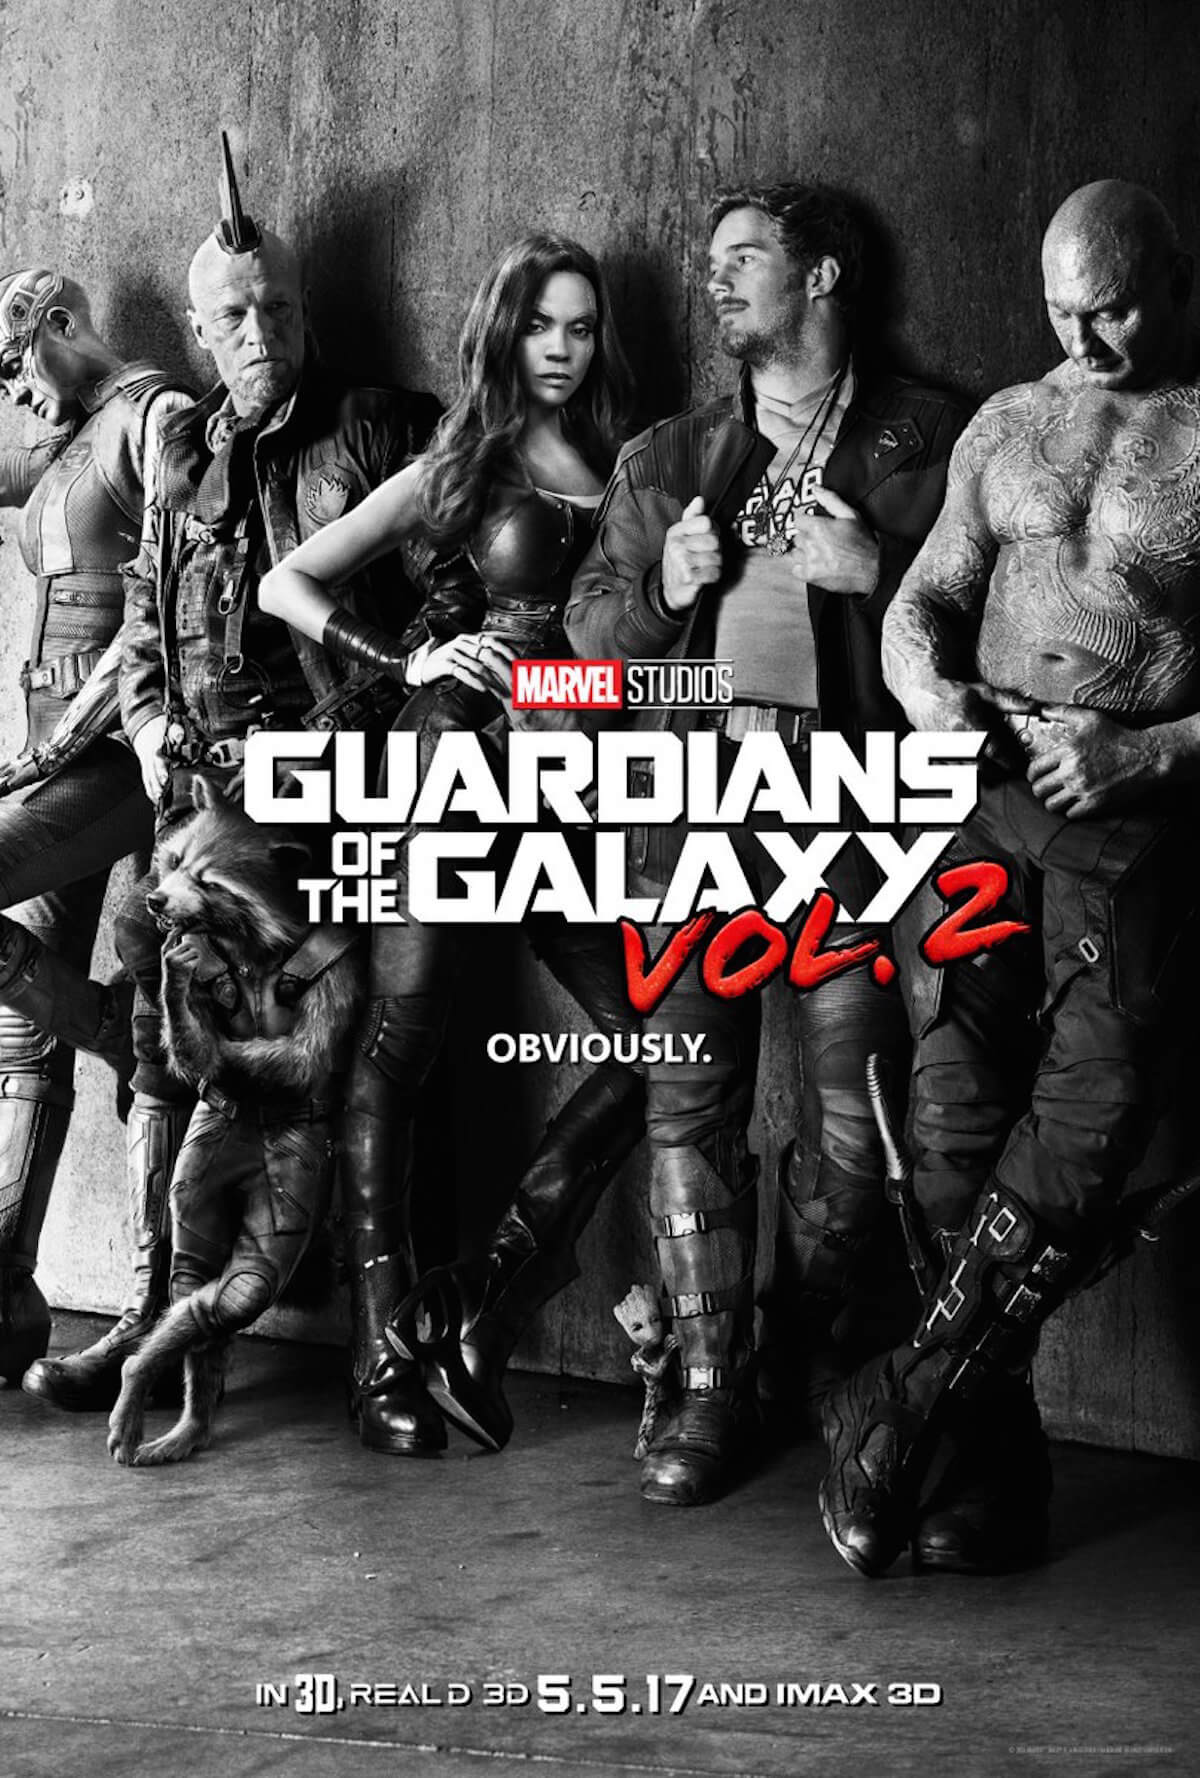 guardians-of-the-galaxy-2-poster-2.jpeg